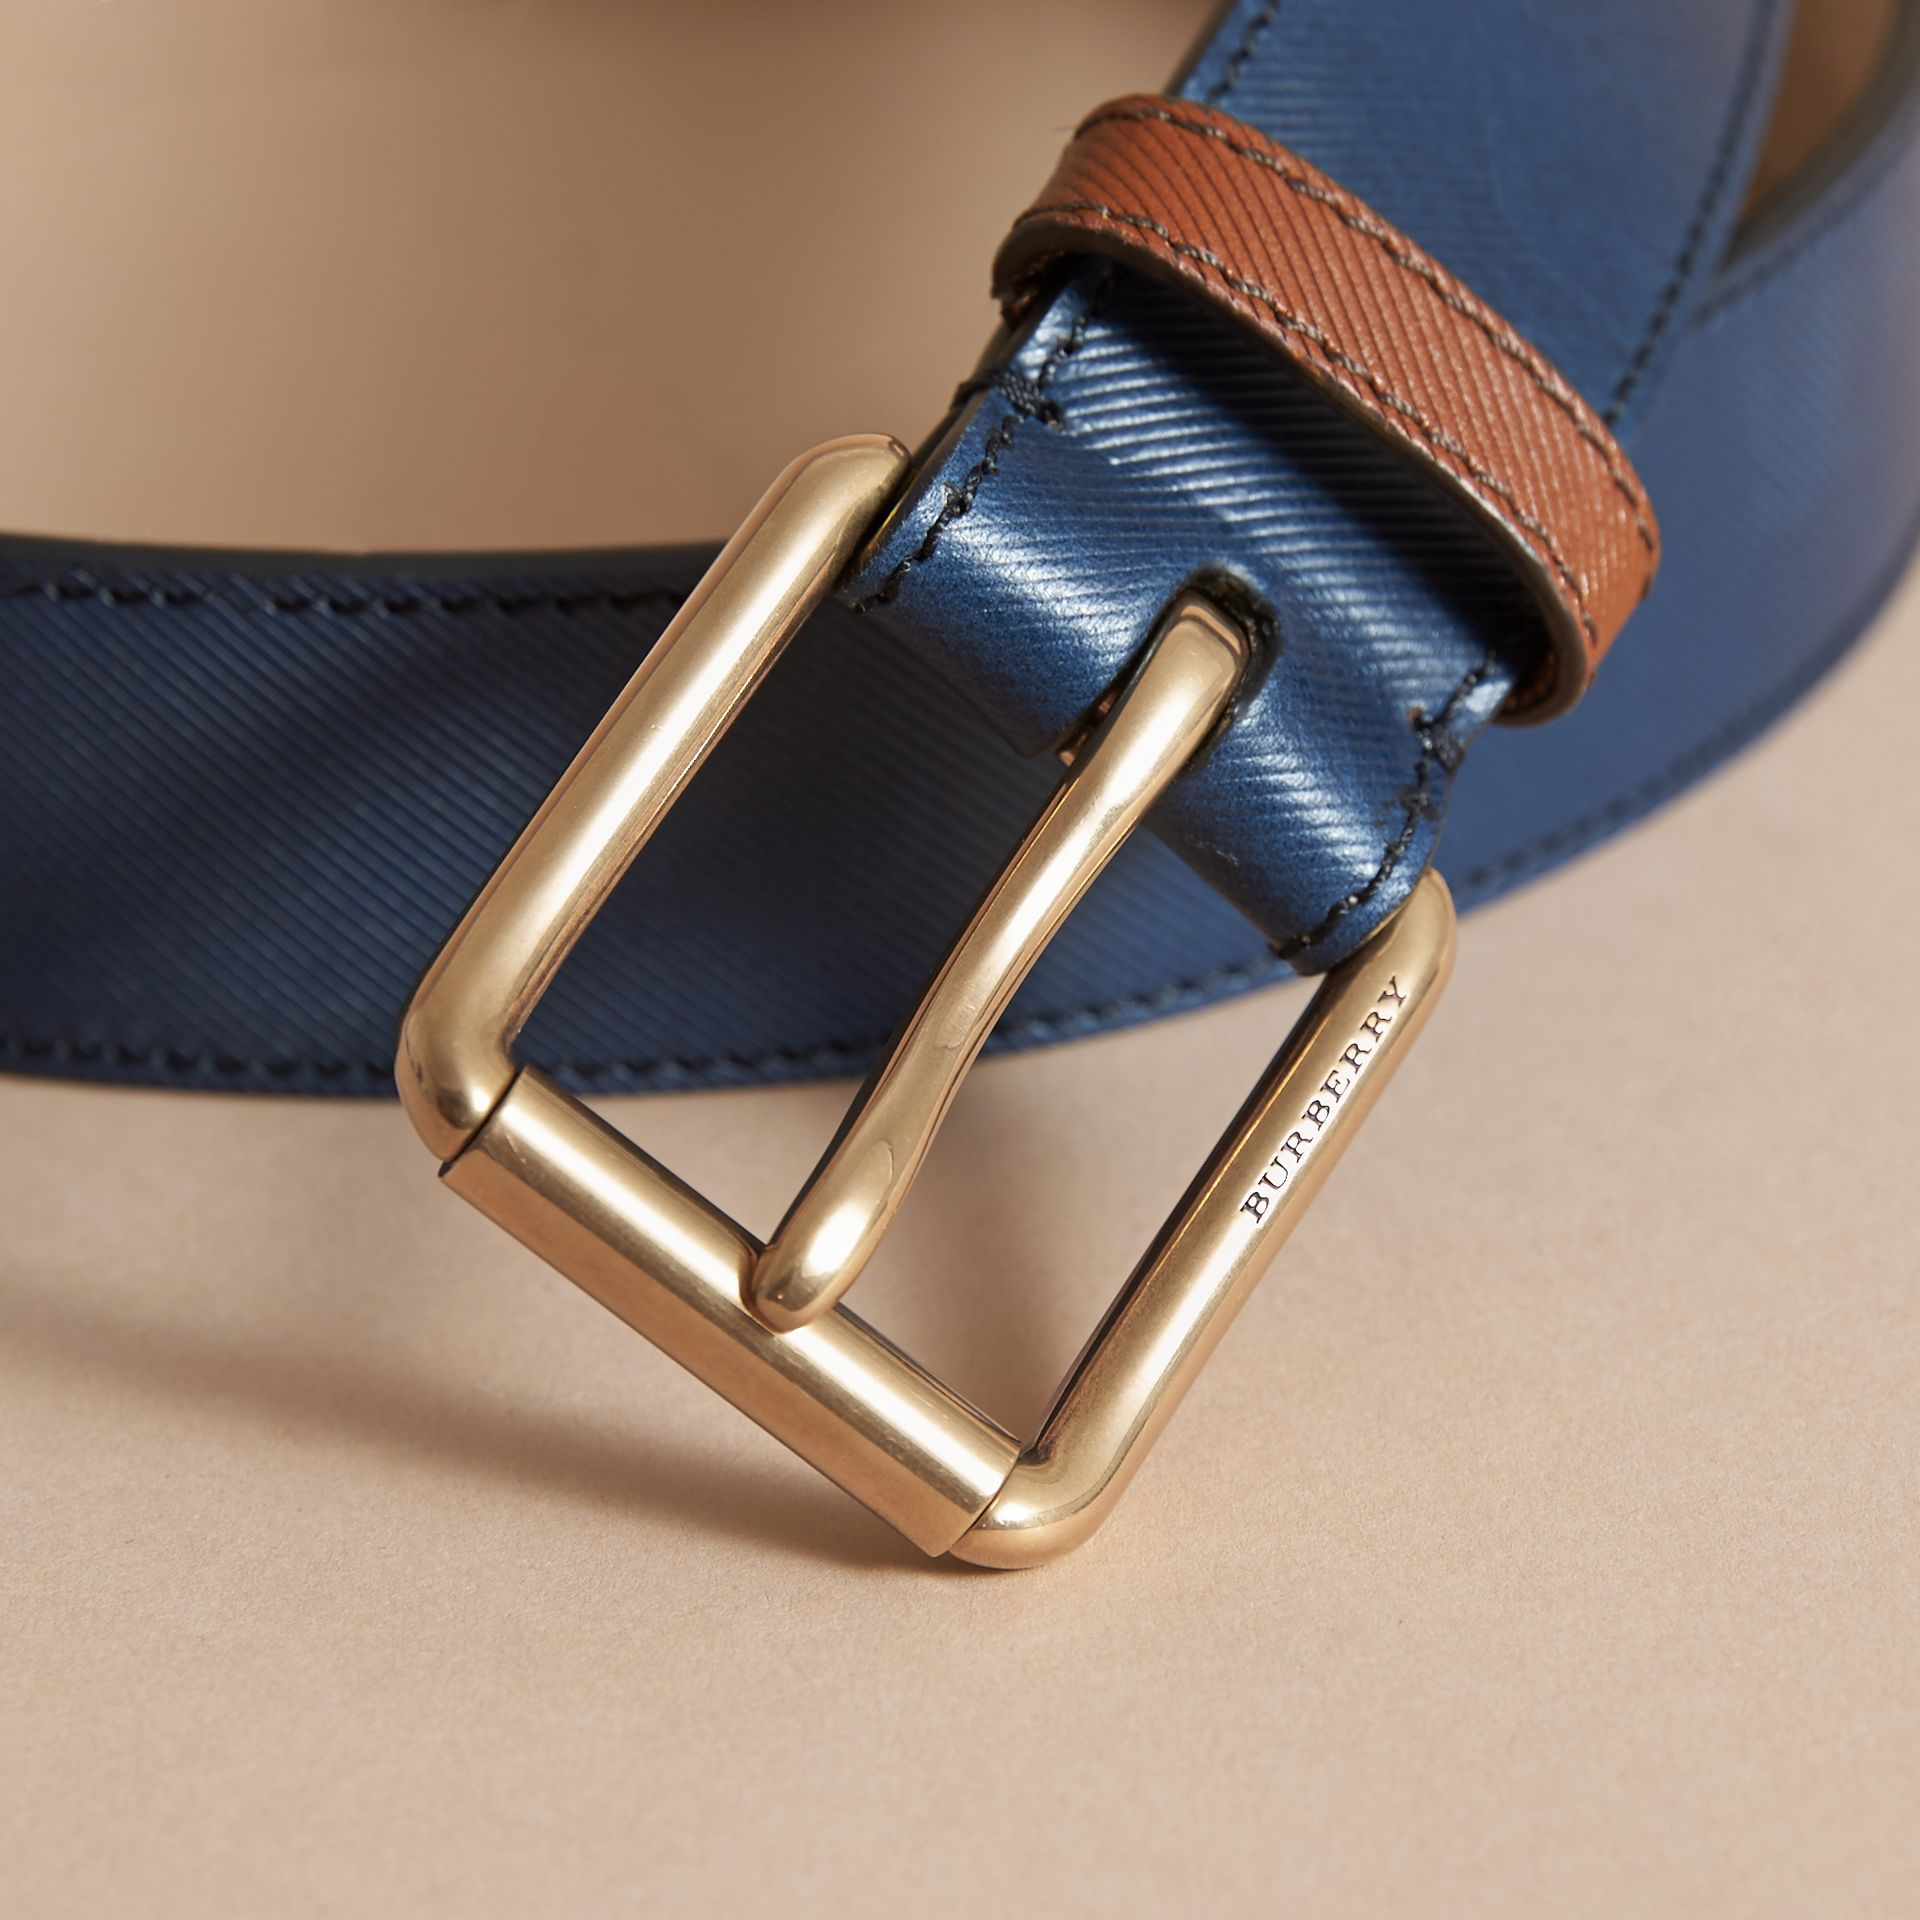 Two-tone Trench Leather Belt in Dark Navy - Men | Burberry Australia - gallery image 2